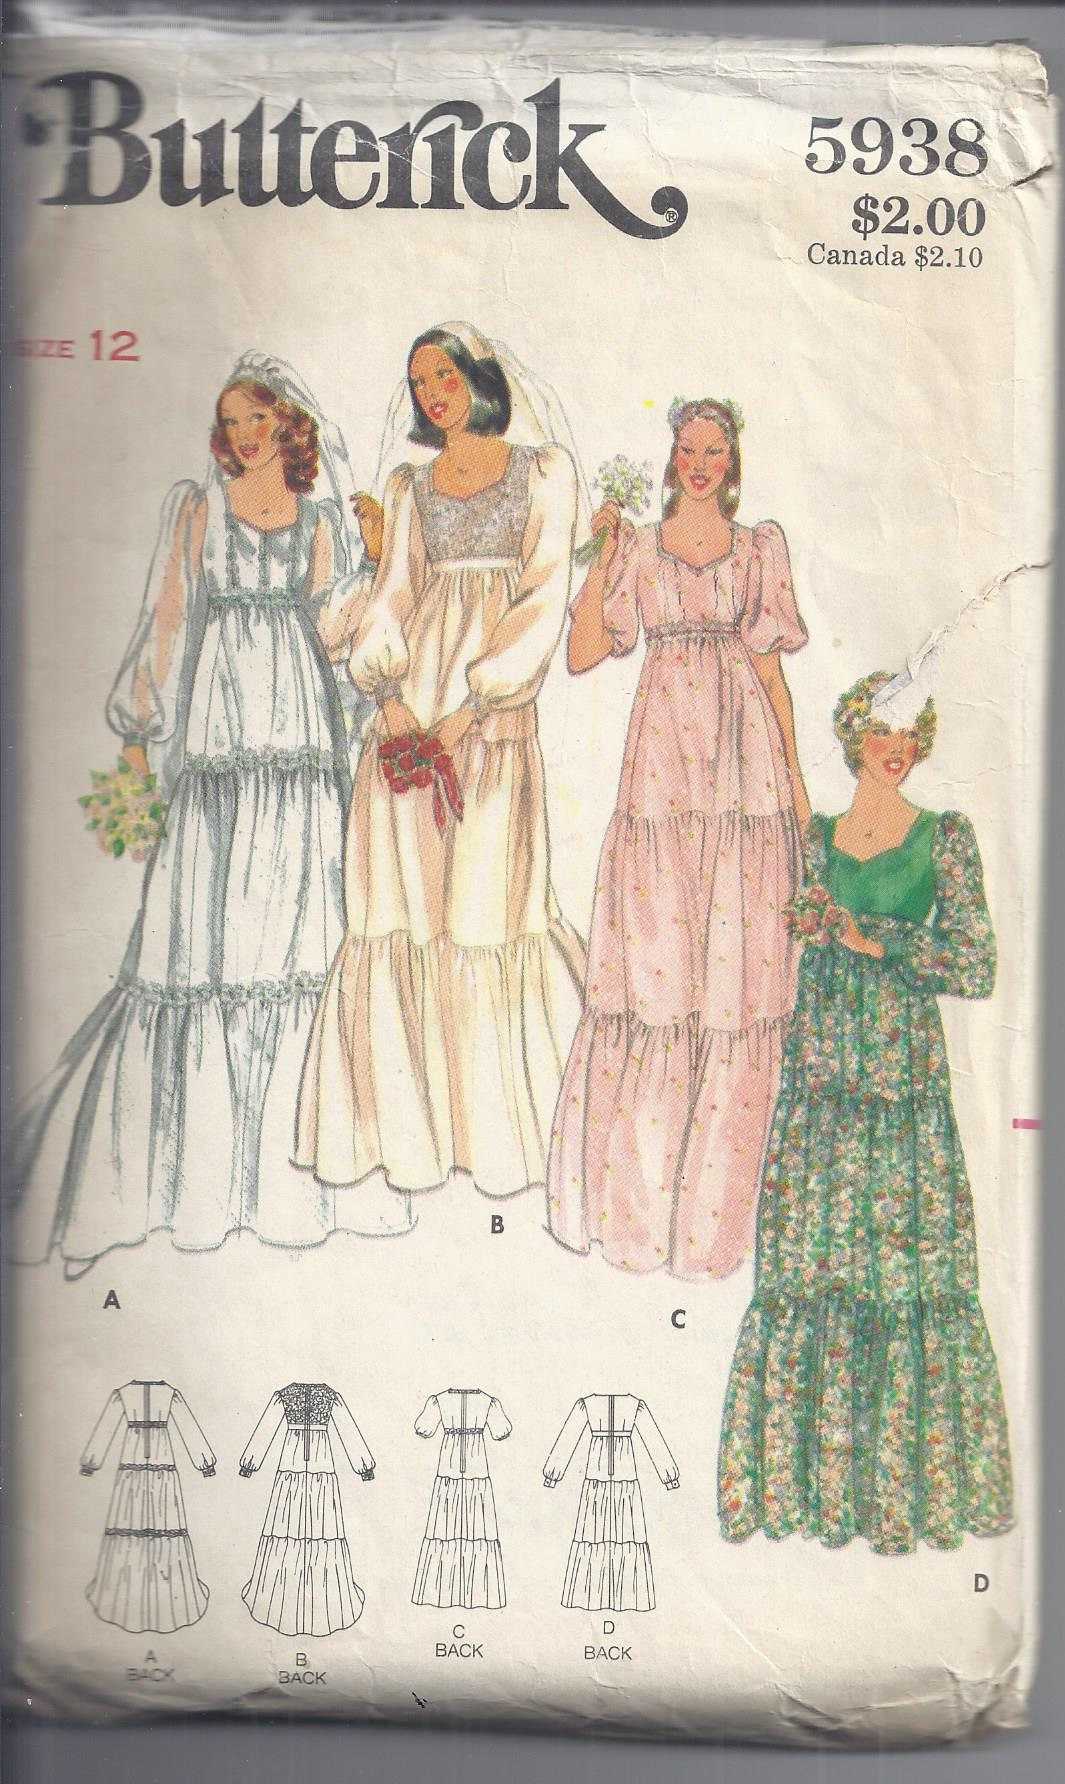 Vintage 1970\'s Butterick 5938 Sewing Pattern: Bridal Gown and ...